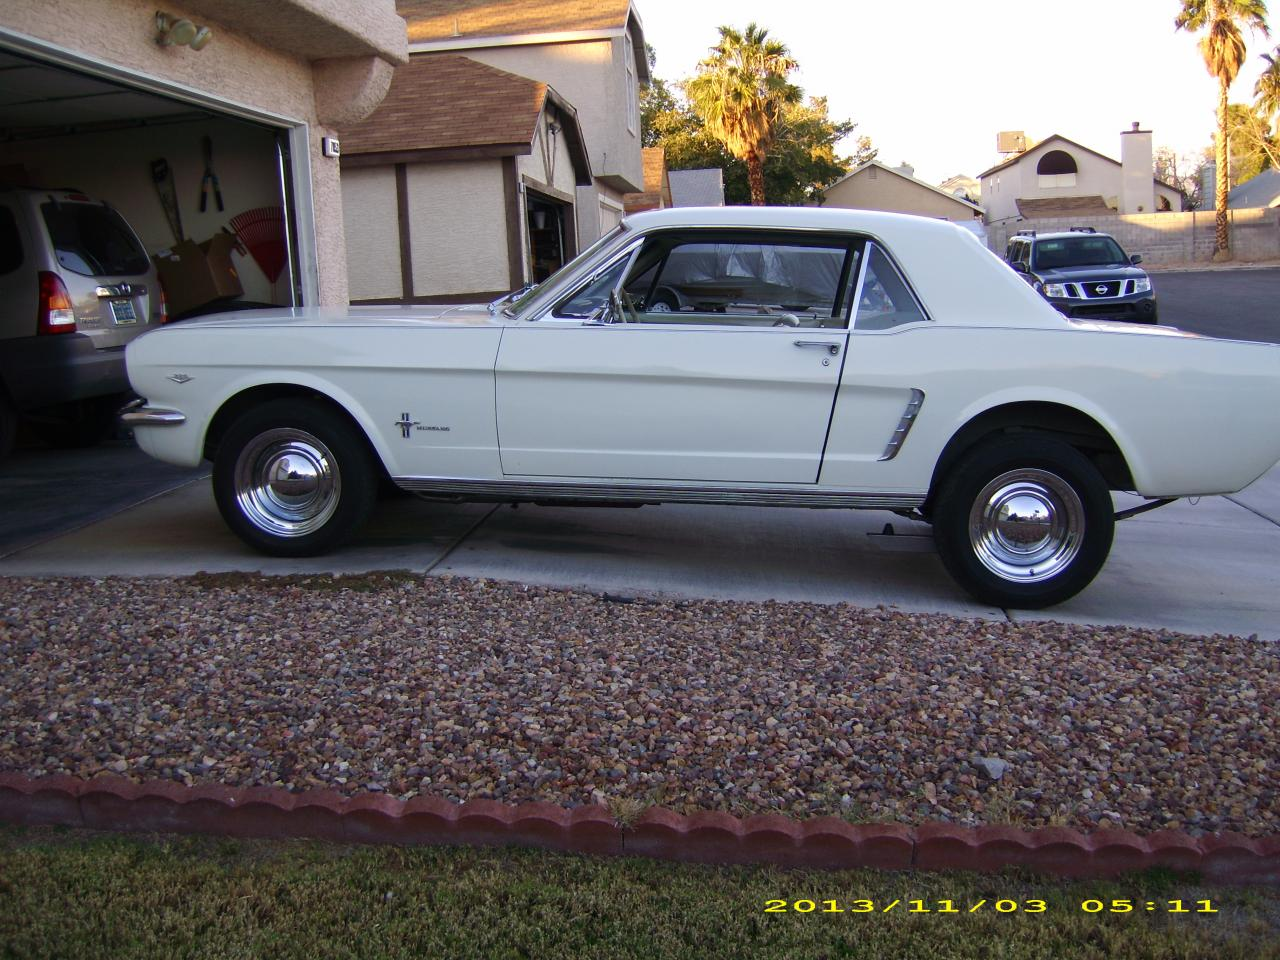 1965 Mustang Coupe - Nicely Restored and Modified! For Sale